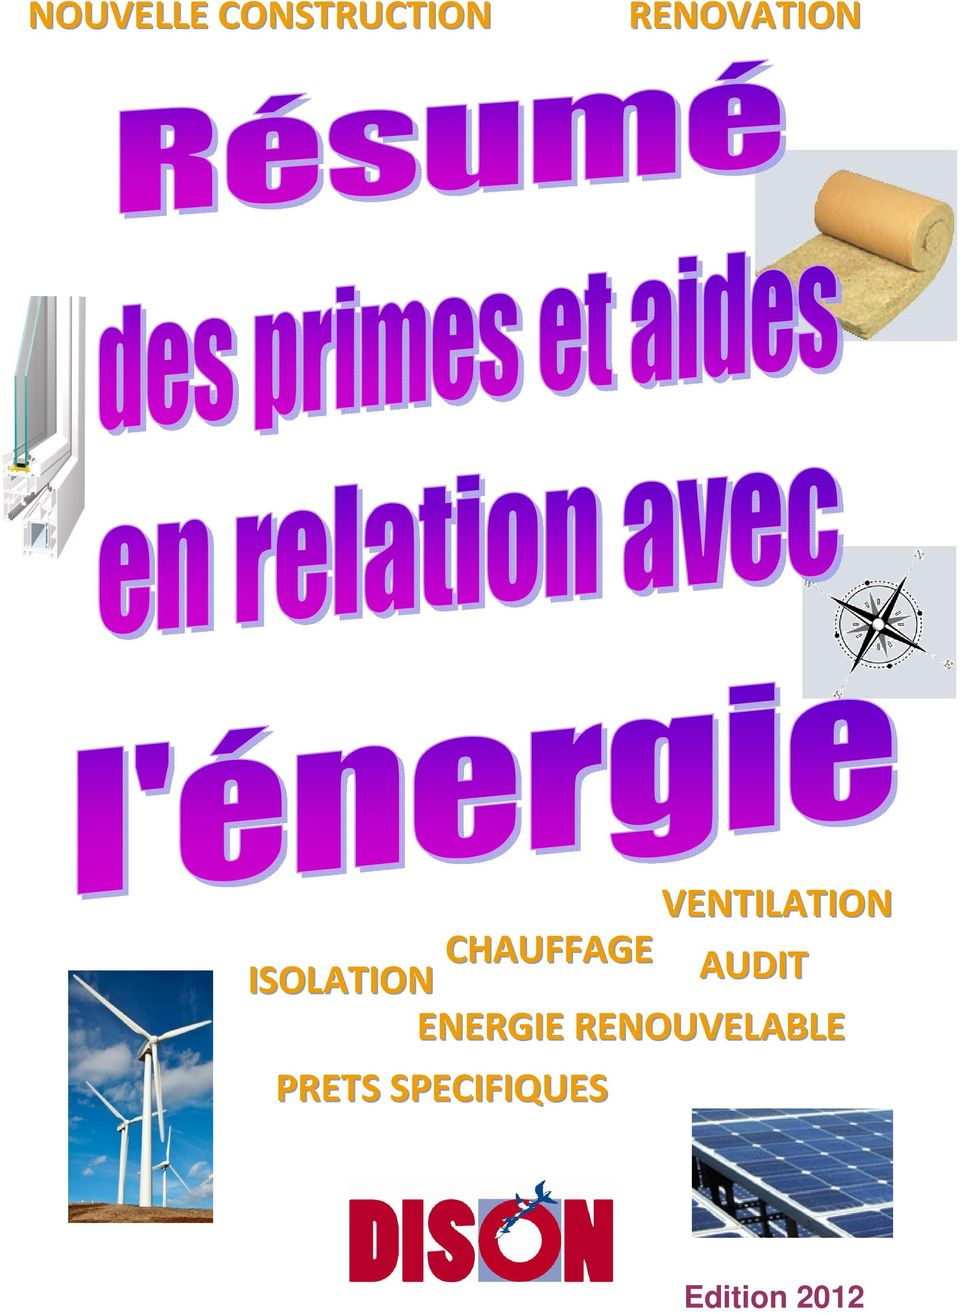 VENTILATION AUDIT ENERGIE